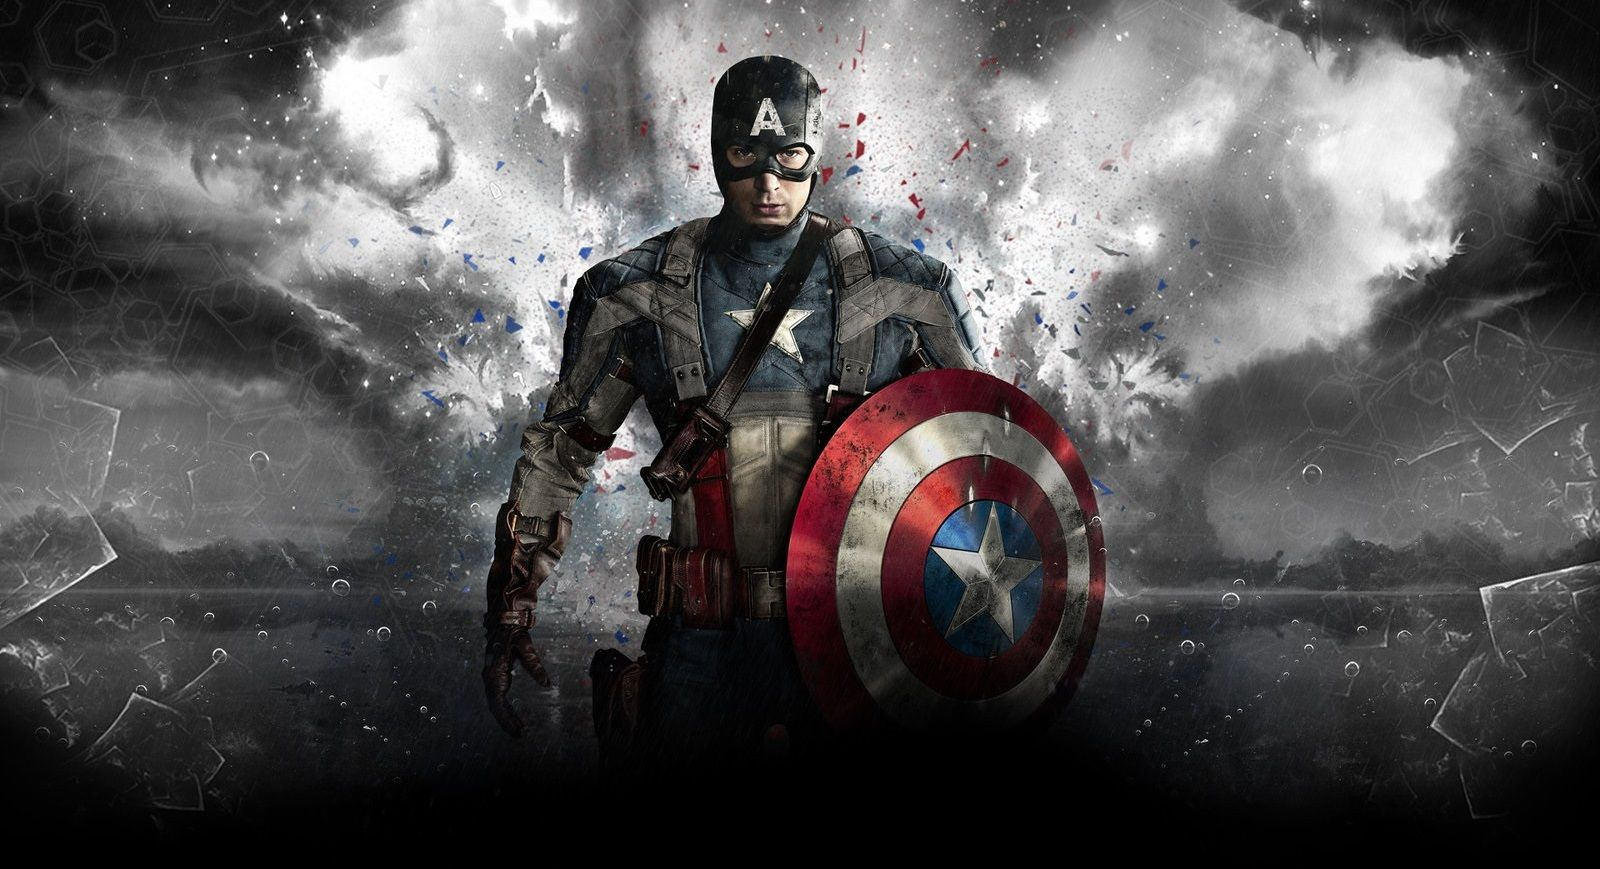 Captain America Wallpapers Free Download Captain America Wallpaper Hd Wallpapers For Pc Avengers Wallpaper